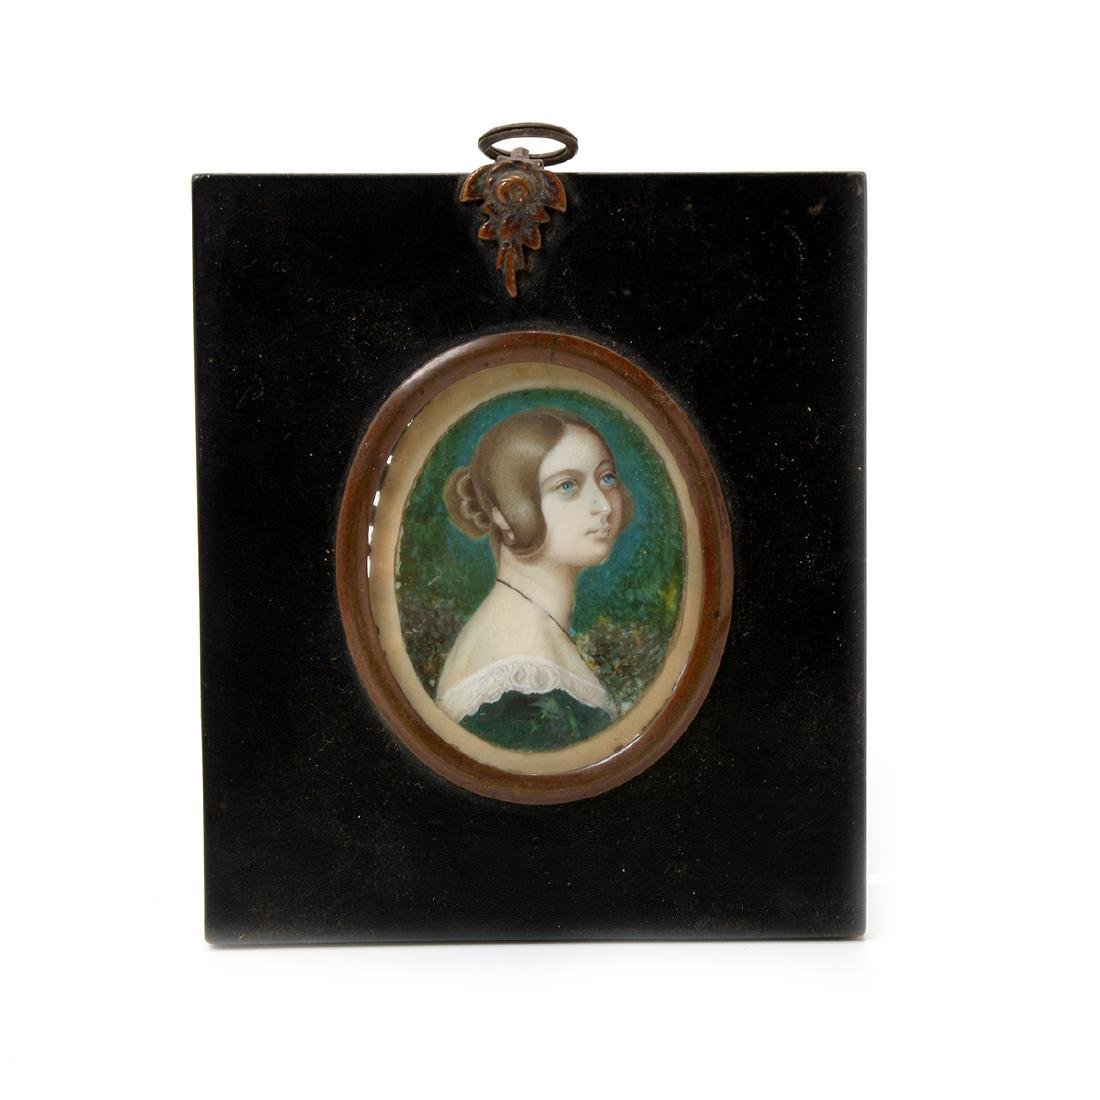 Six Miniature Portraits of Pre-Civil War Era Women - 6